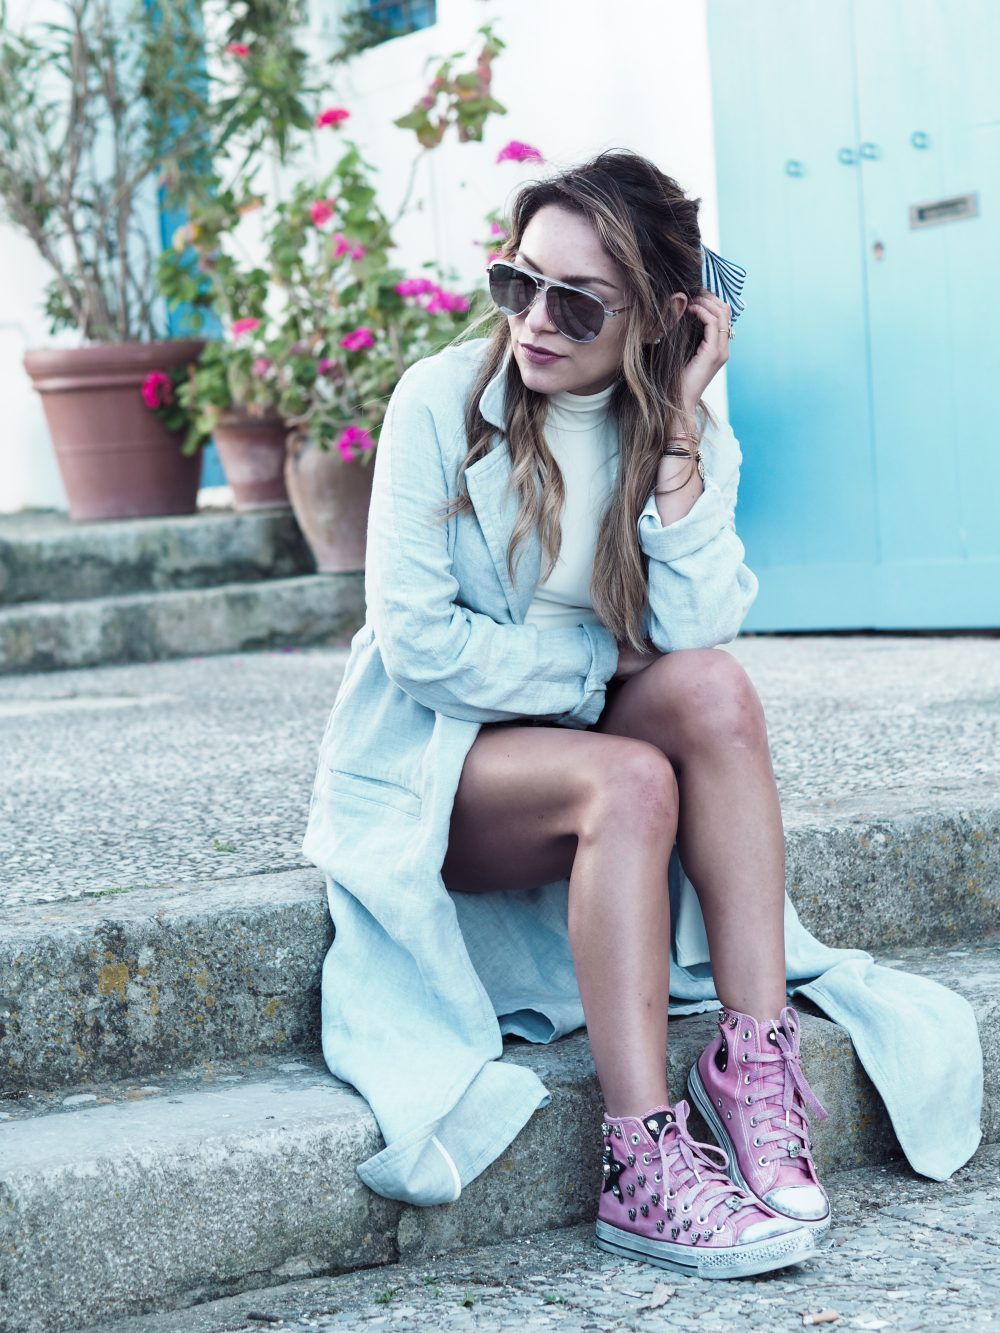 Whitney's Wonderland UK Top Fashion Blogger wears mango linen coat and Louis Vuitton sunglasses in Ibiza